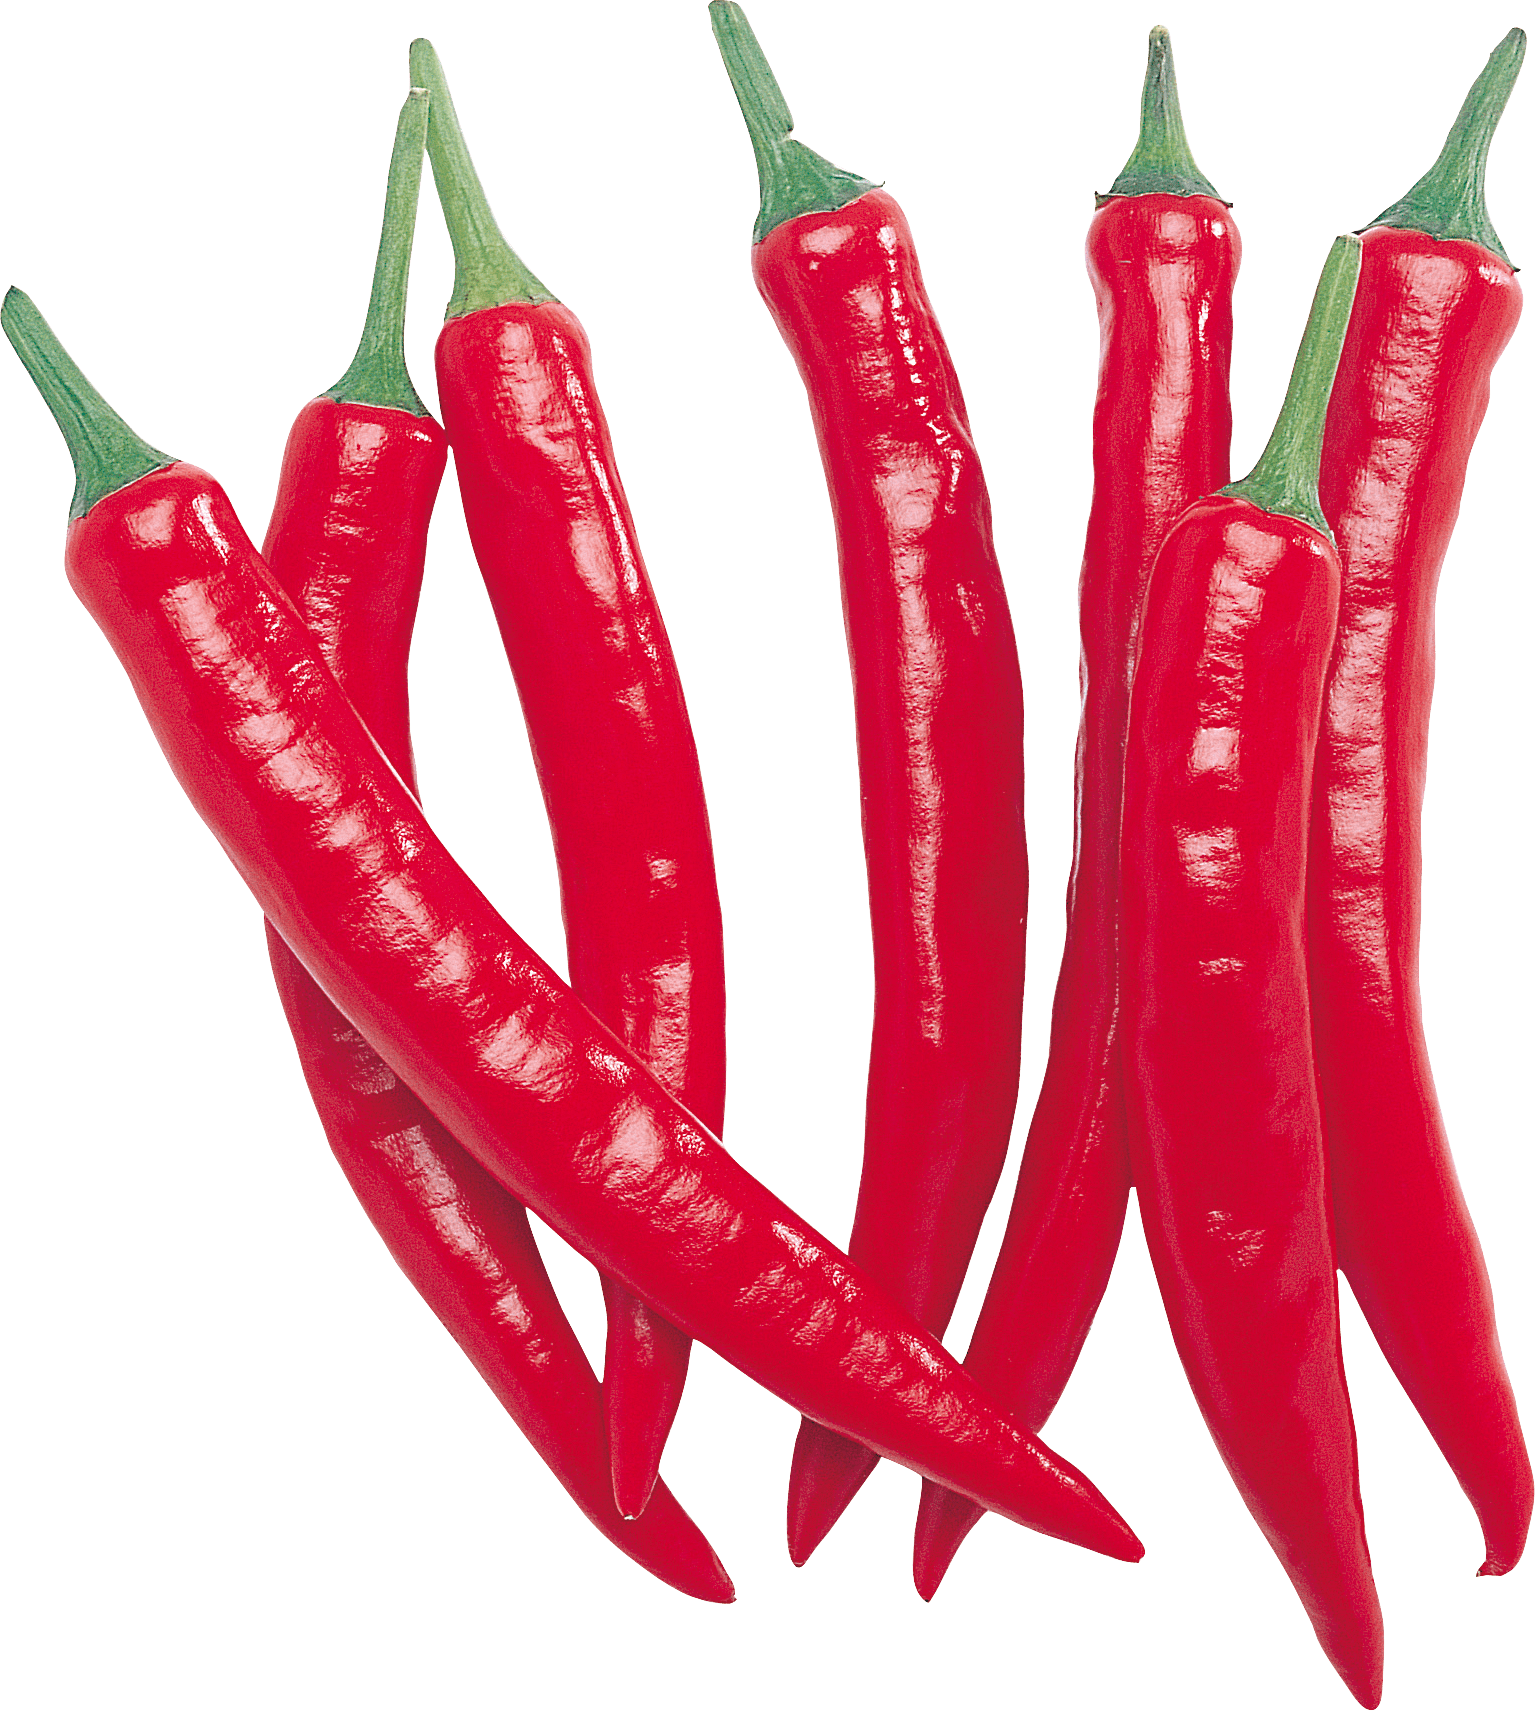 Red chilli row transparent. Peppers clipart serrano pepper